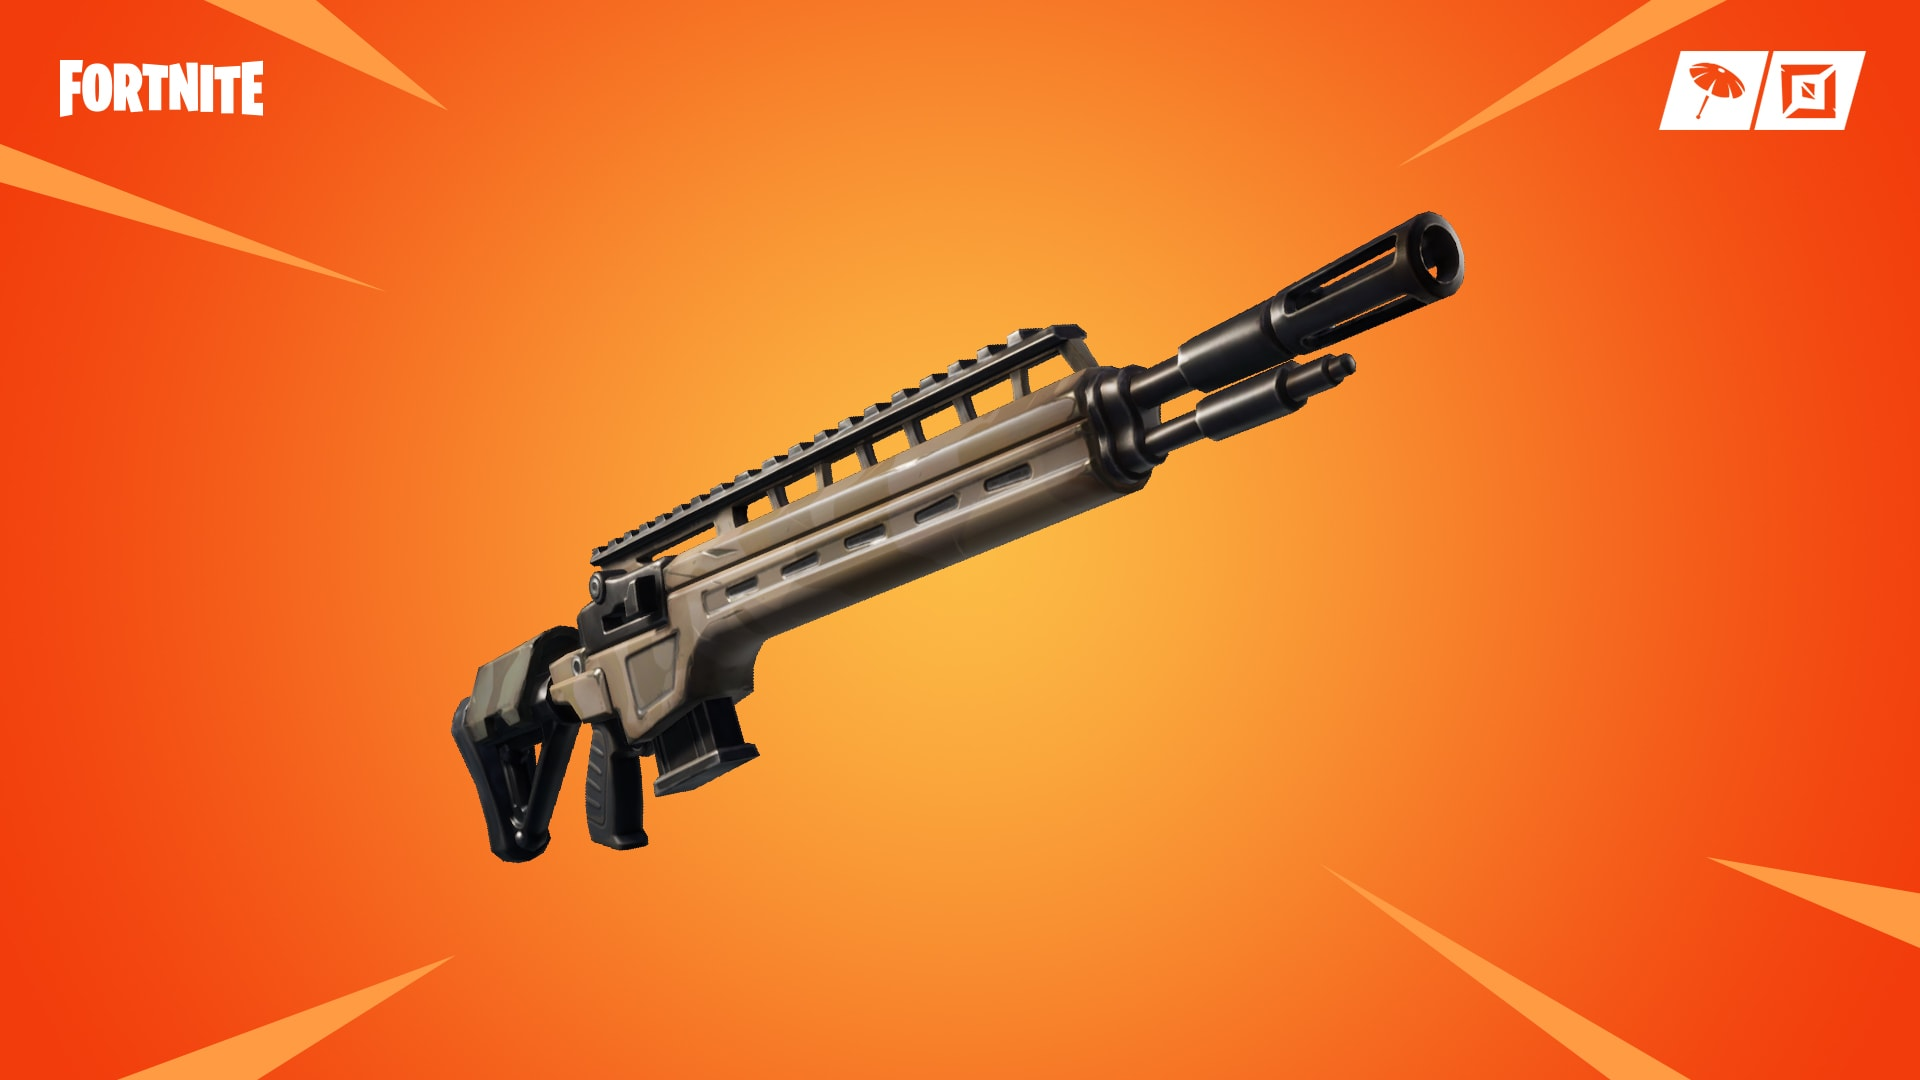 Fortnite Infantry Rifle Epic and Legendary Rarities Added in Fortnite Patch 8.40